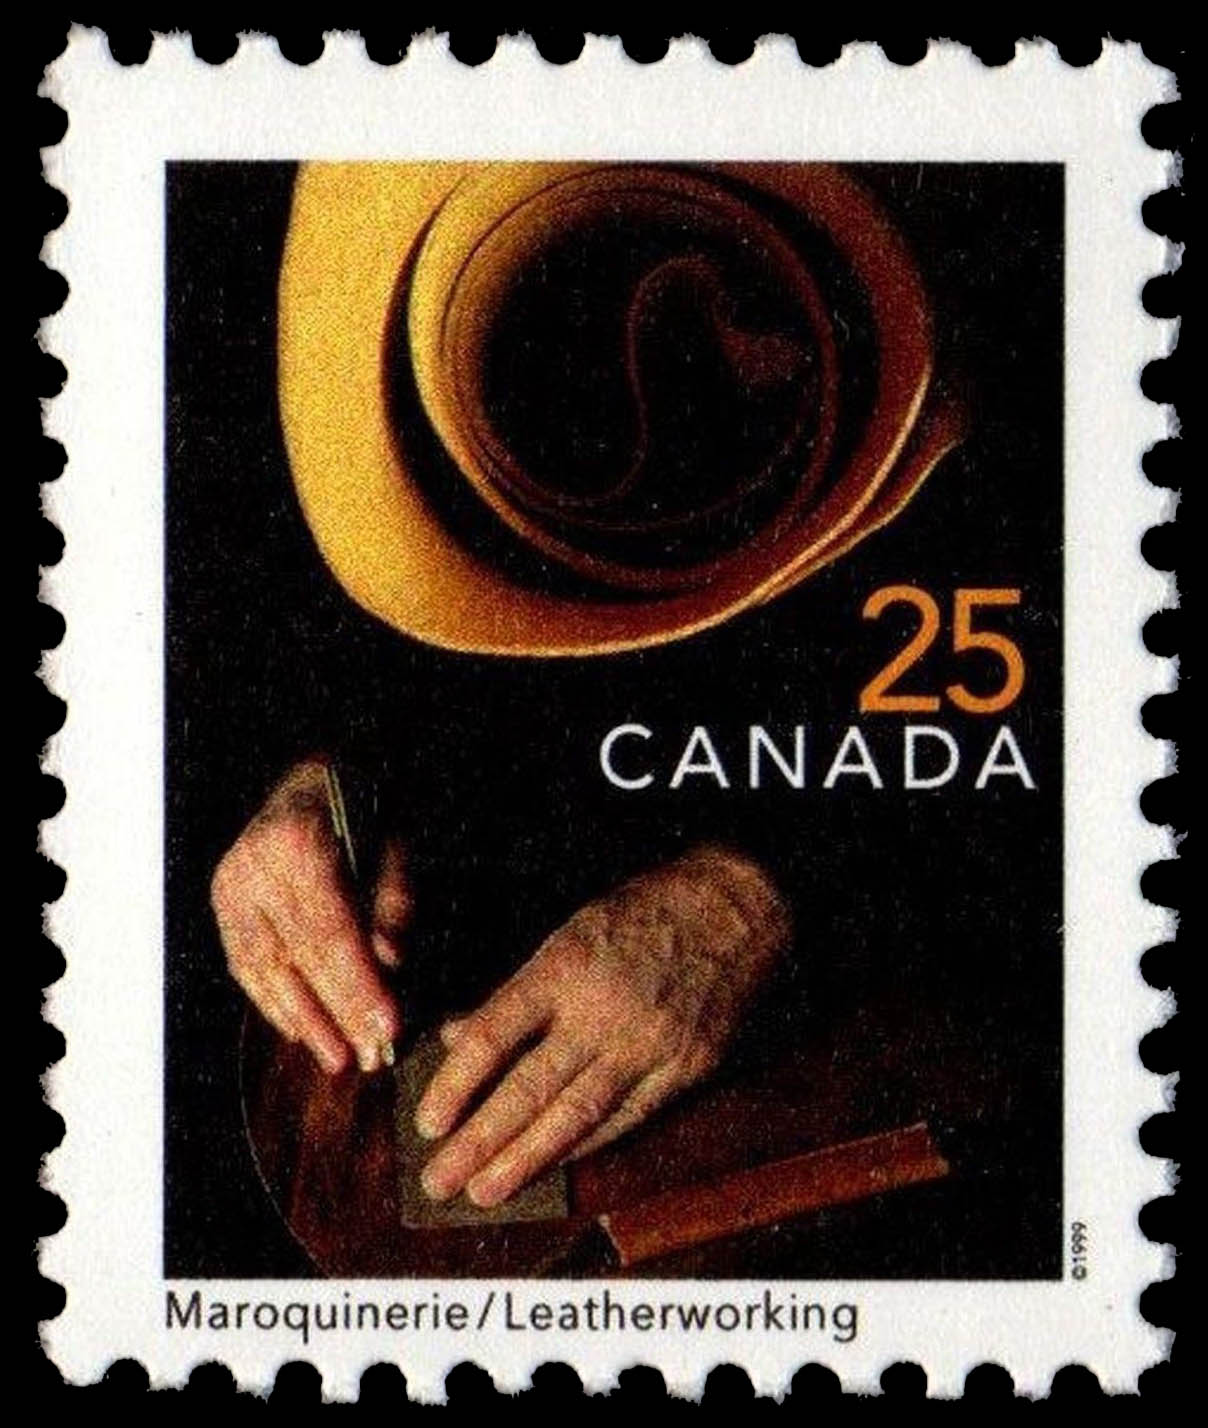 Leatherworking Canada Postage Stamp   Traditional Trades